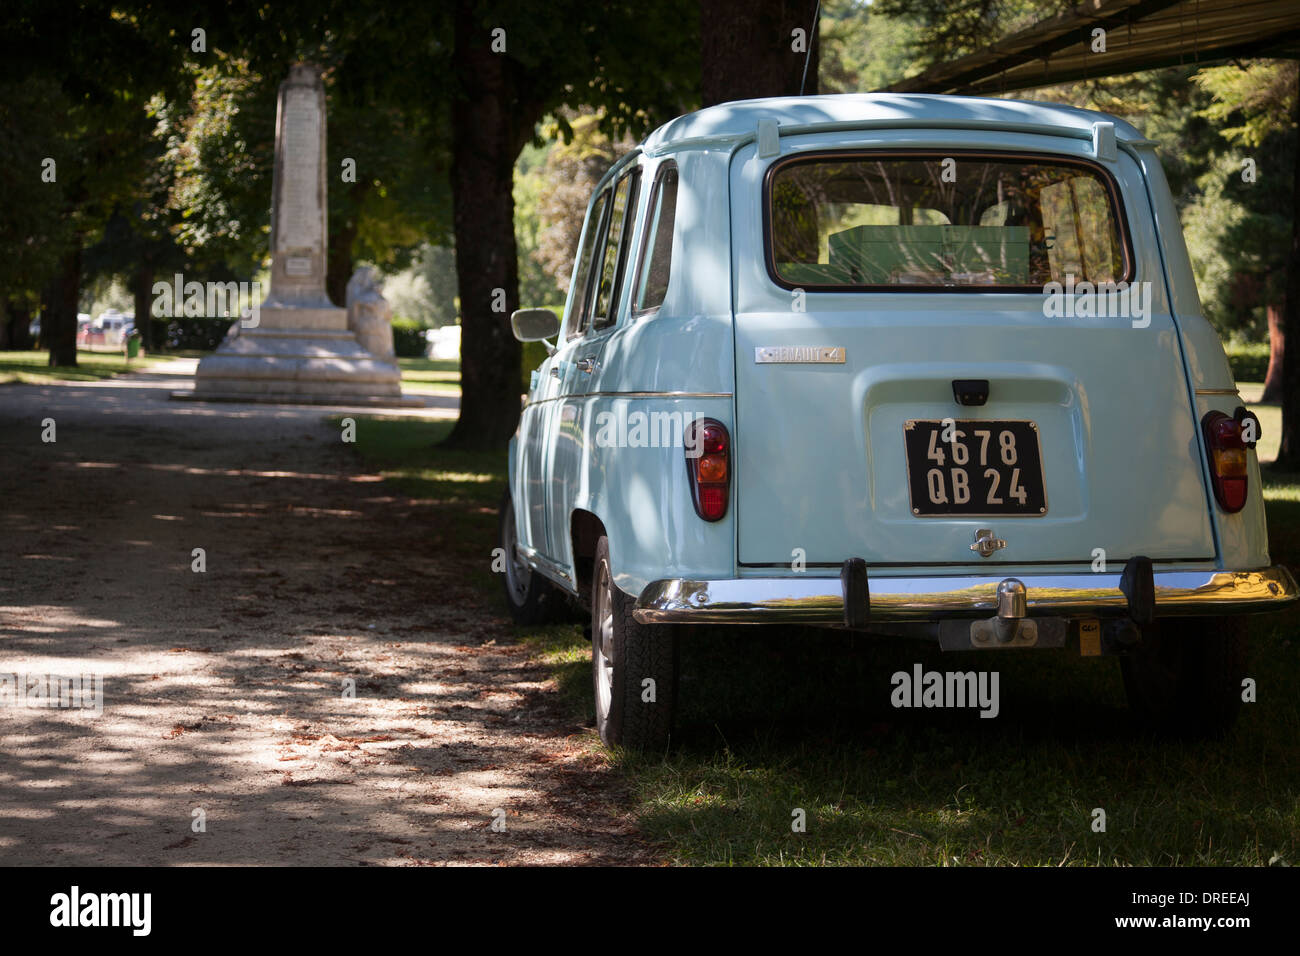 Rear View Of Pale Blue Vintage French Renault 4 Car In A Park In Stock Photo Alamy